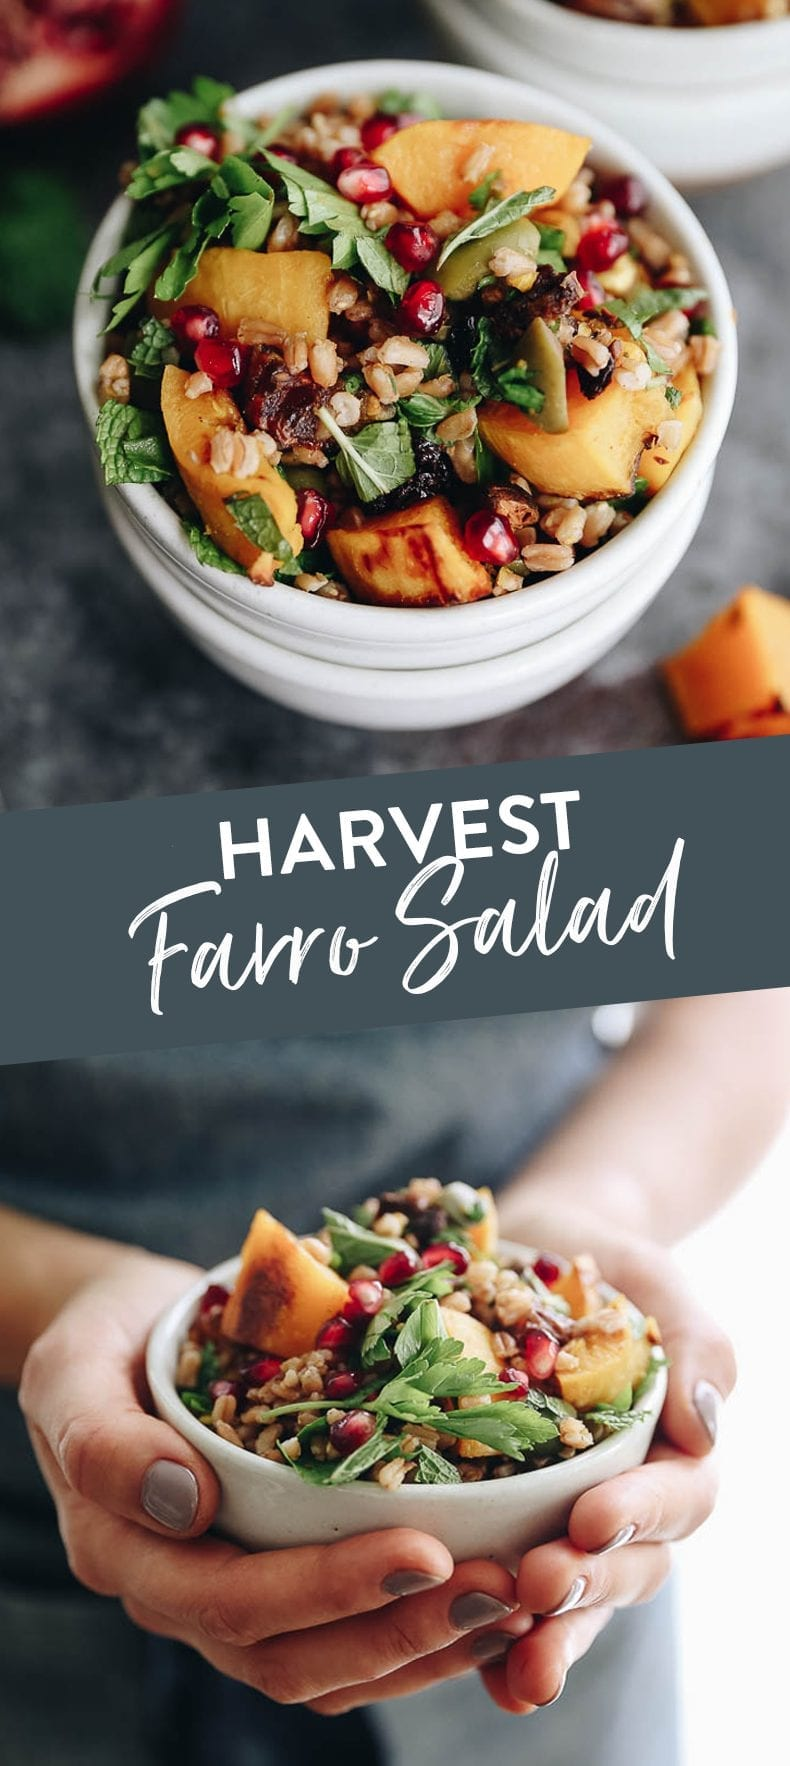 Get the best of fall with this Harvest Farro Salad with Roasted Butternut Squash and a Pomegranate Molasses Dressing. A seasonal favorite full of nutrition and delicious flavors for a side dish or main! #salad #farro #grainsalad